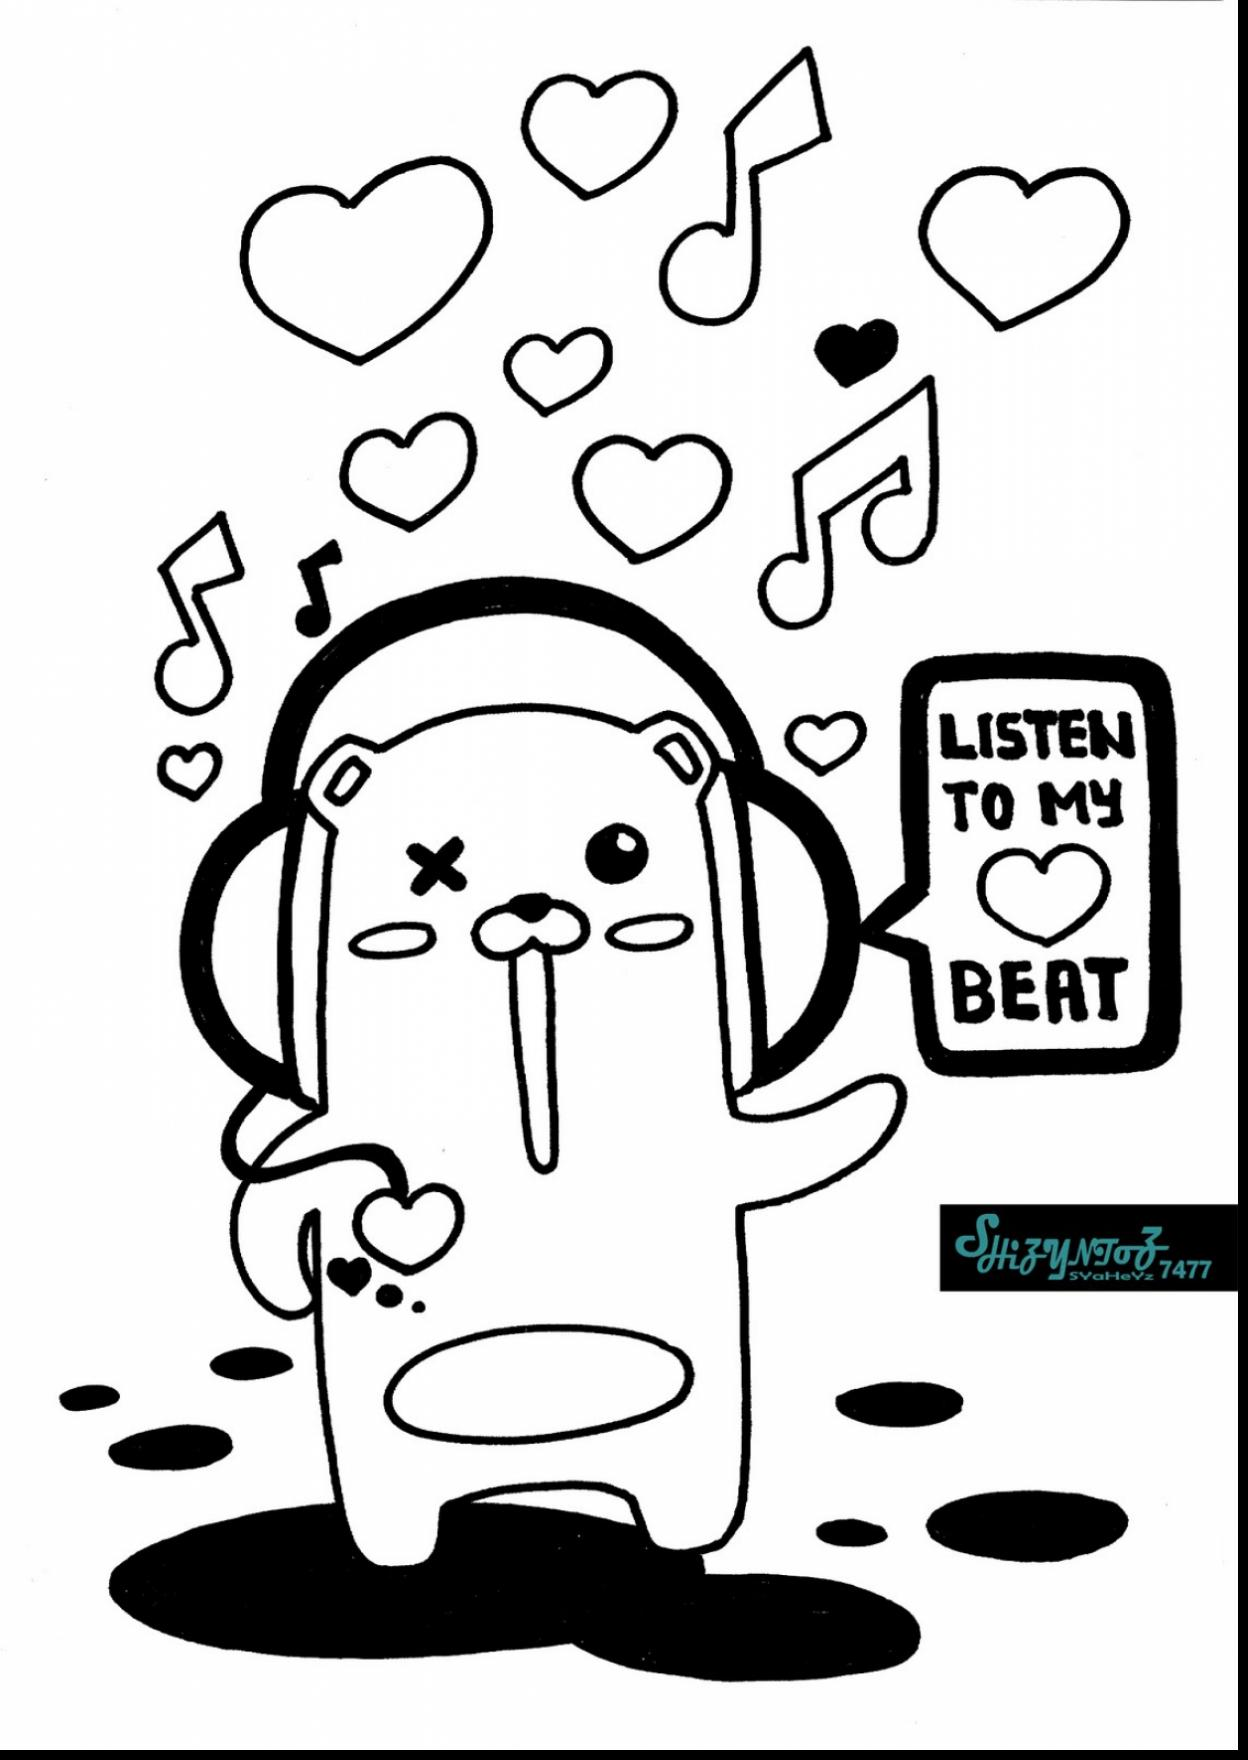 Emo Heart Drawing at GetDrawings.com | Free for personal use Emo ...